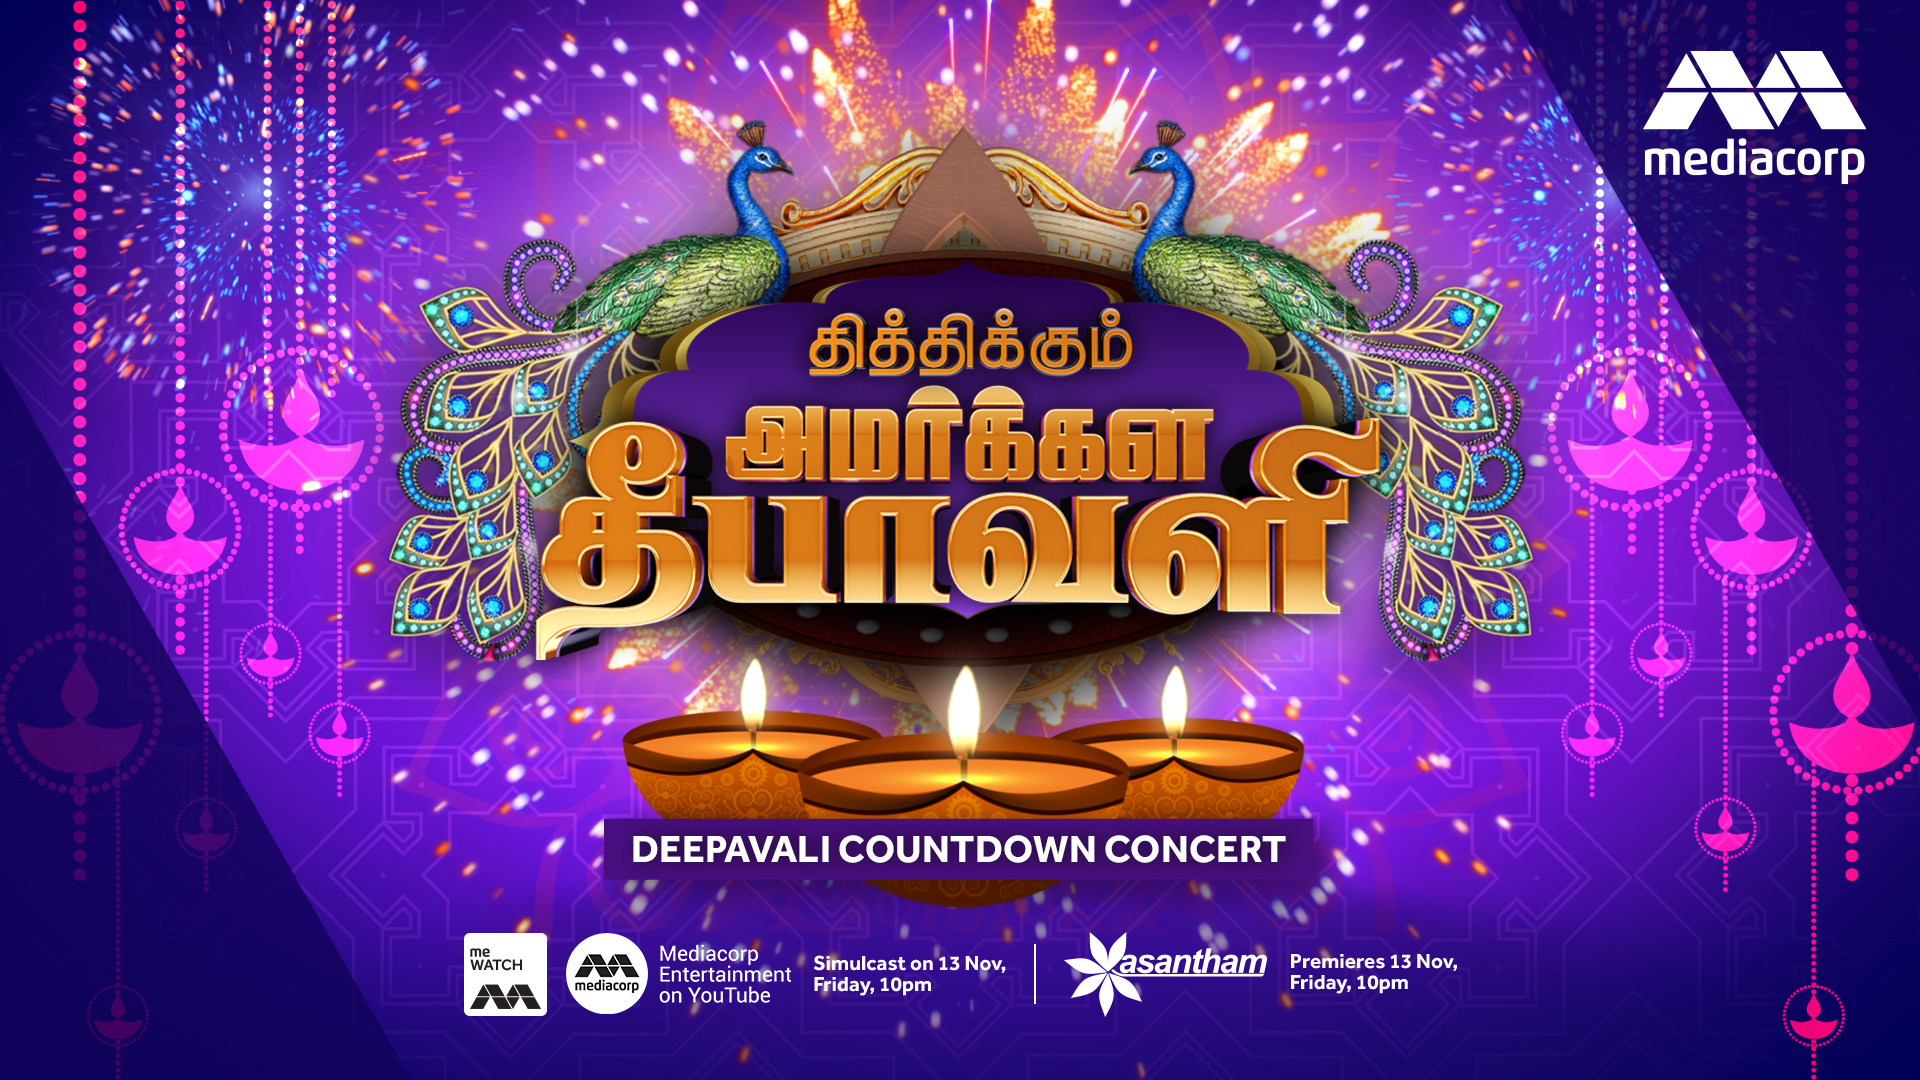 Thithikkum Amarkala  Deepavala will be available on Friday, November 13, from 10pm to 12.30am on Vasantham and meWATCH. Photo courtesy: Mediacorp